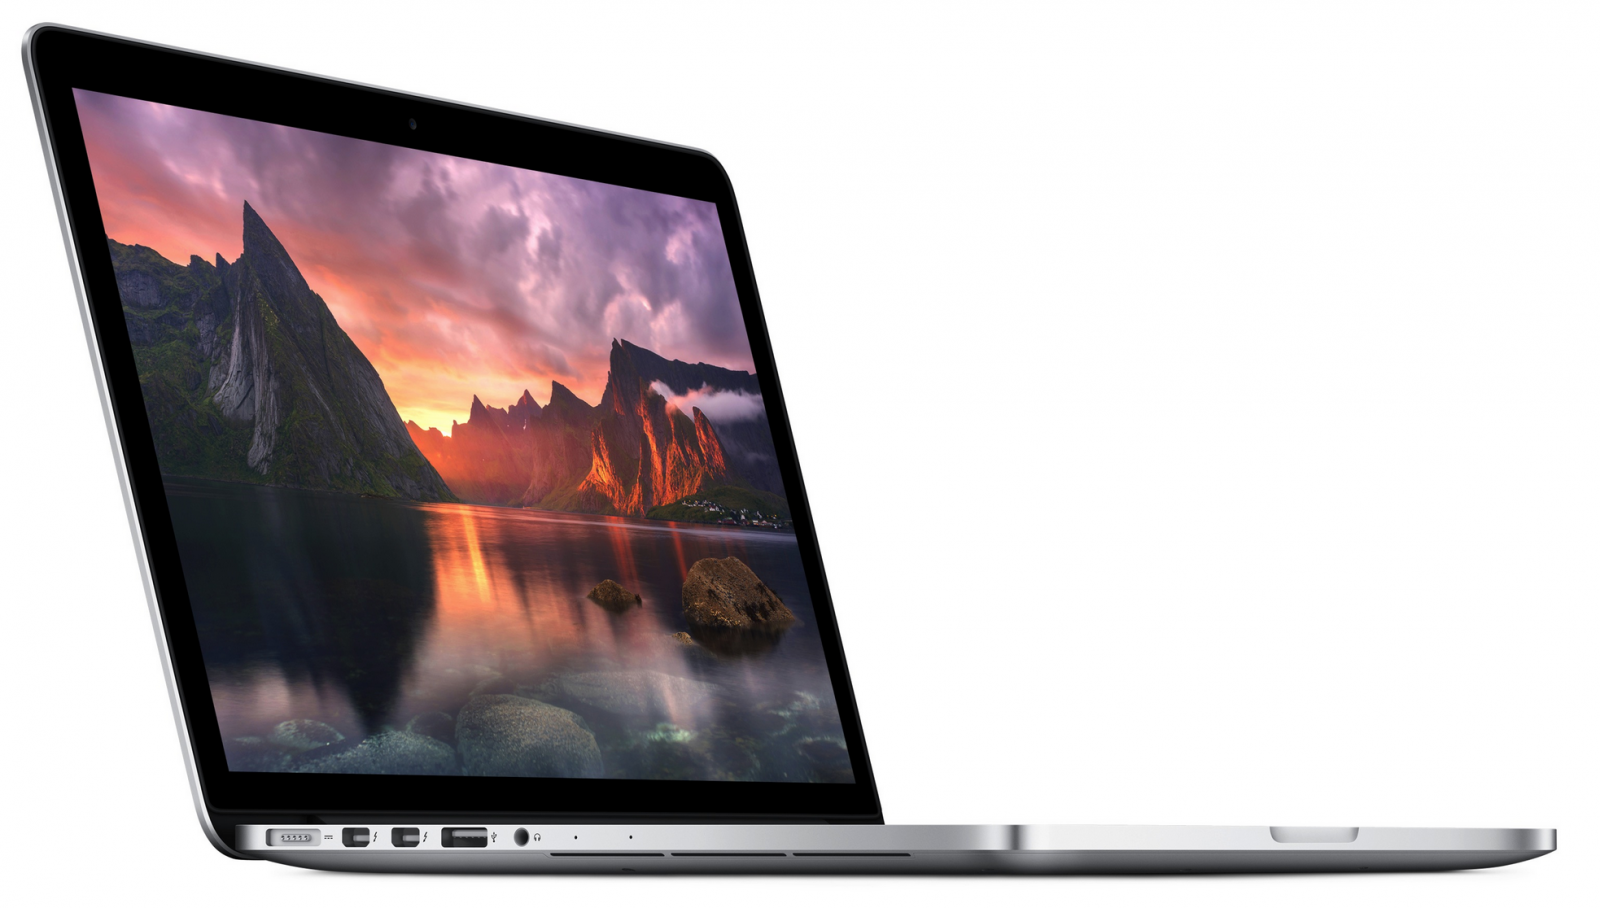 Slim And Elegant Images Of Macbook image #47630